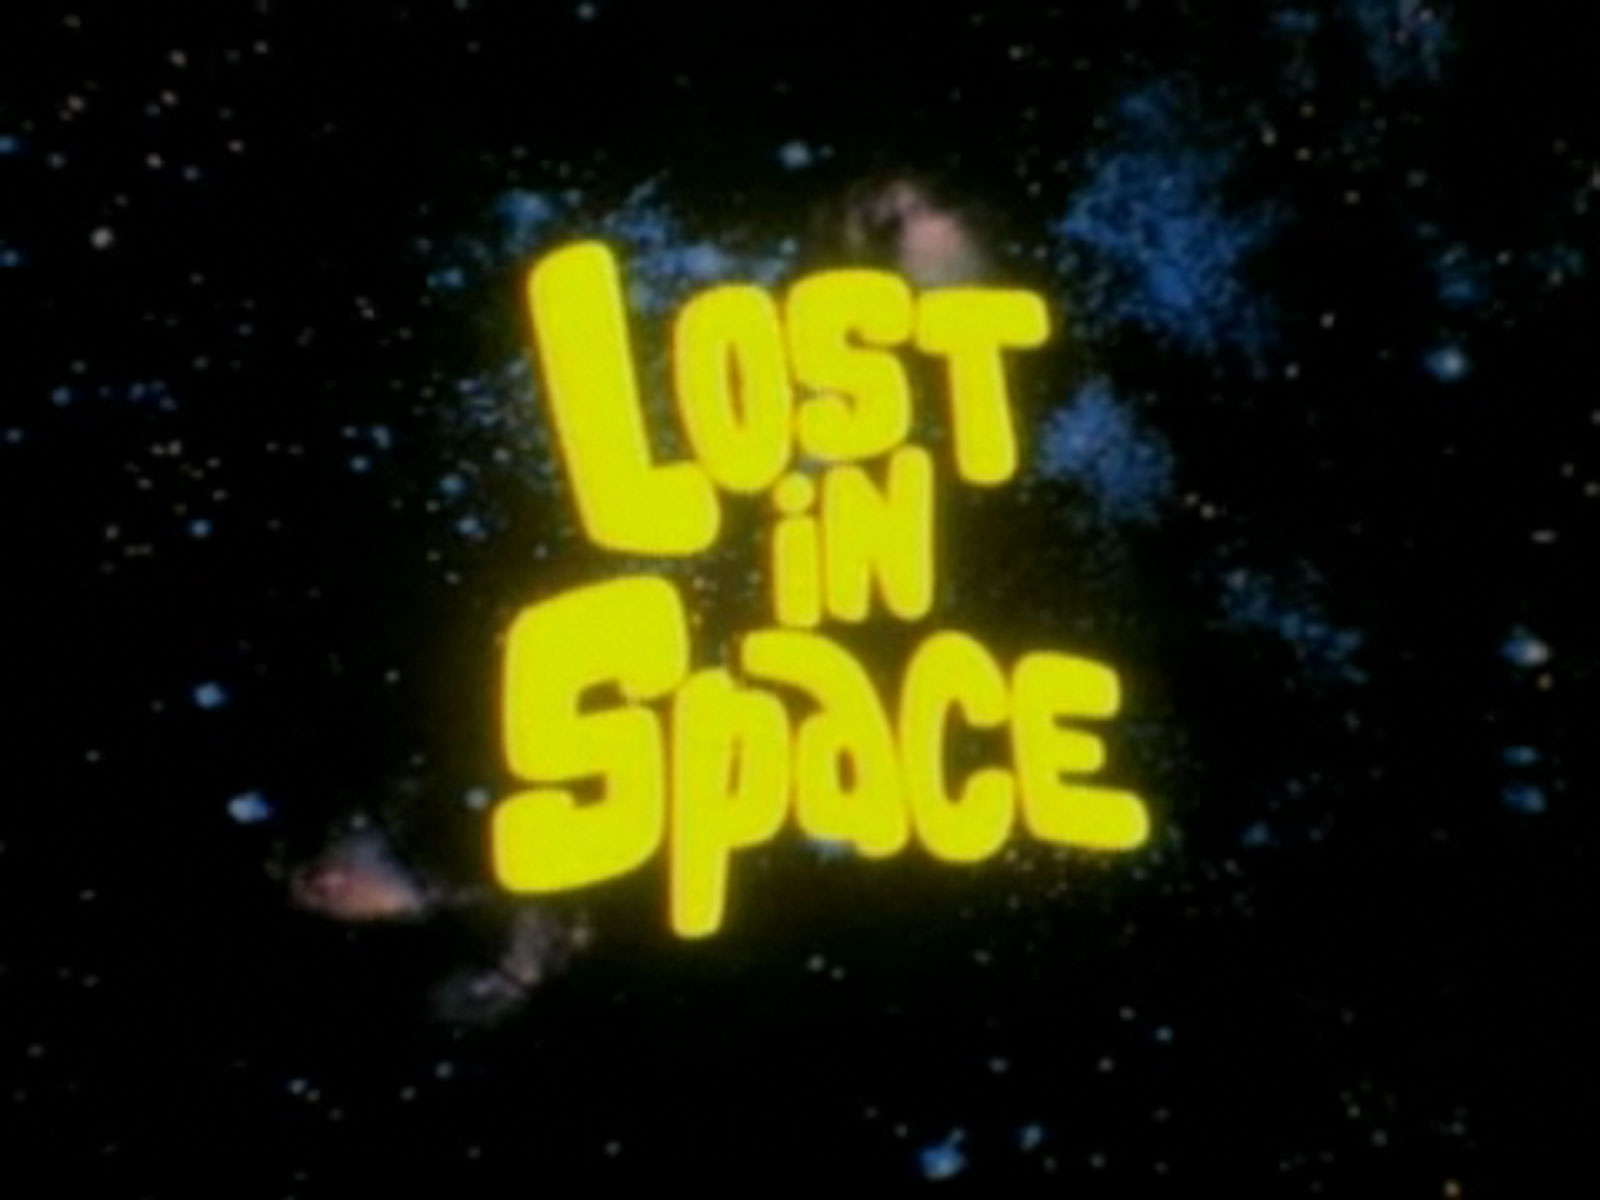 Psychotronic 16 Lost In Space Network Sales